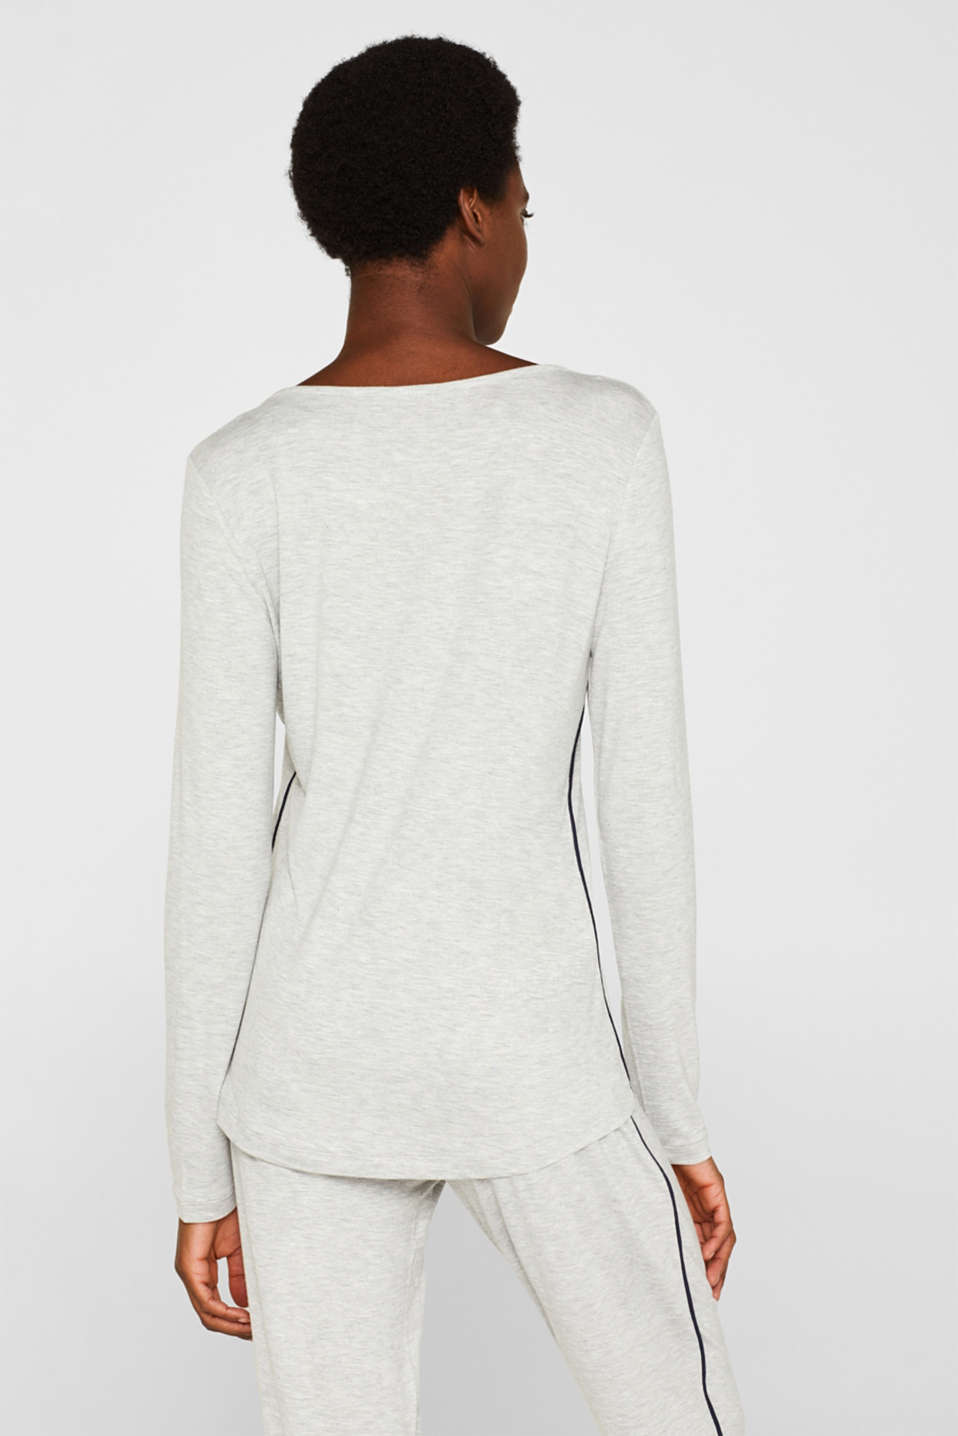 LIGHT GREY melange long sleeve top, LIGHT GREY, detail image number 2